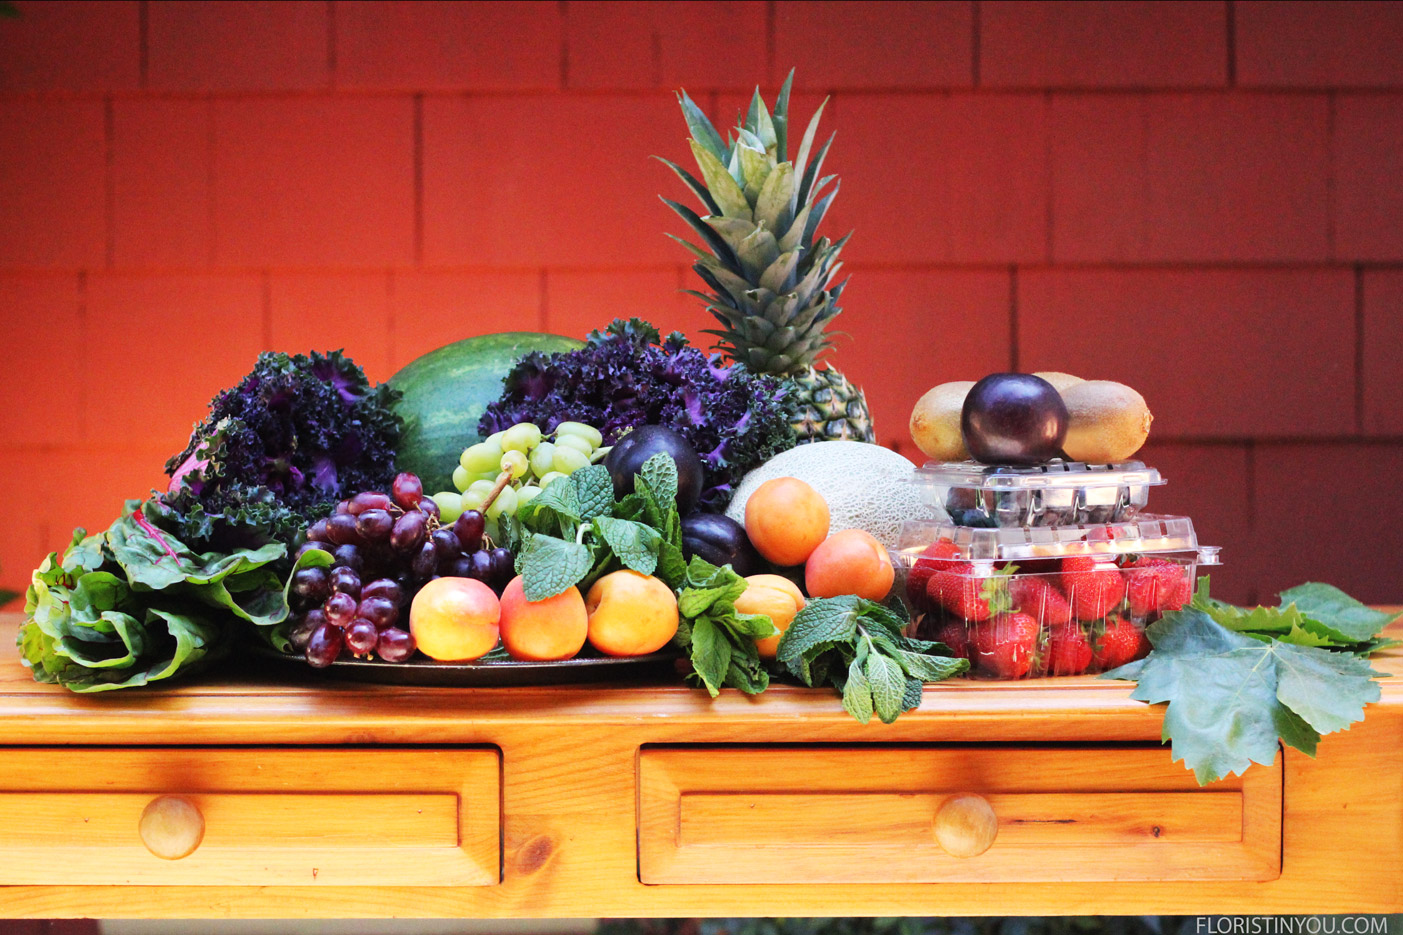 Here are the fruits and veggies you will use.